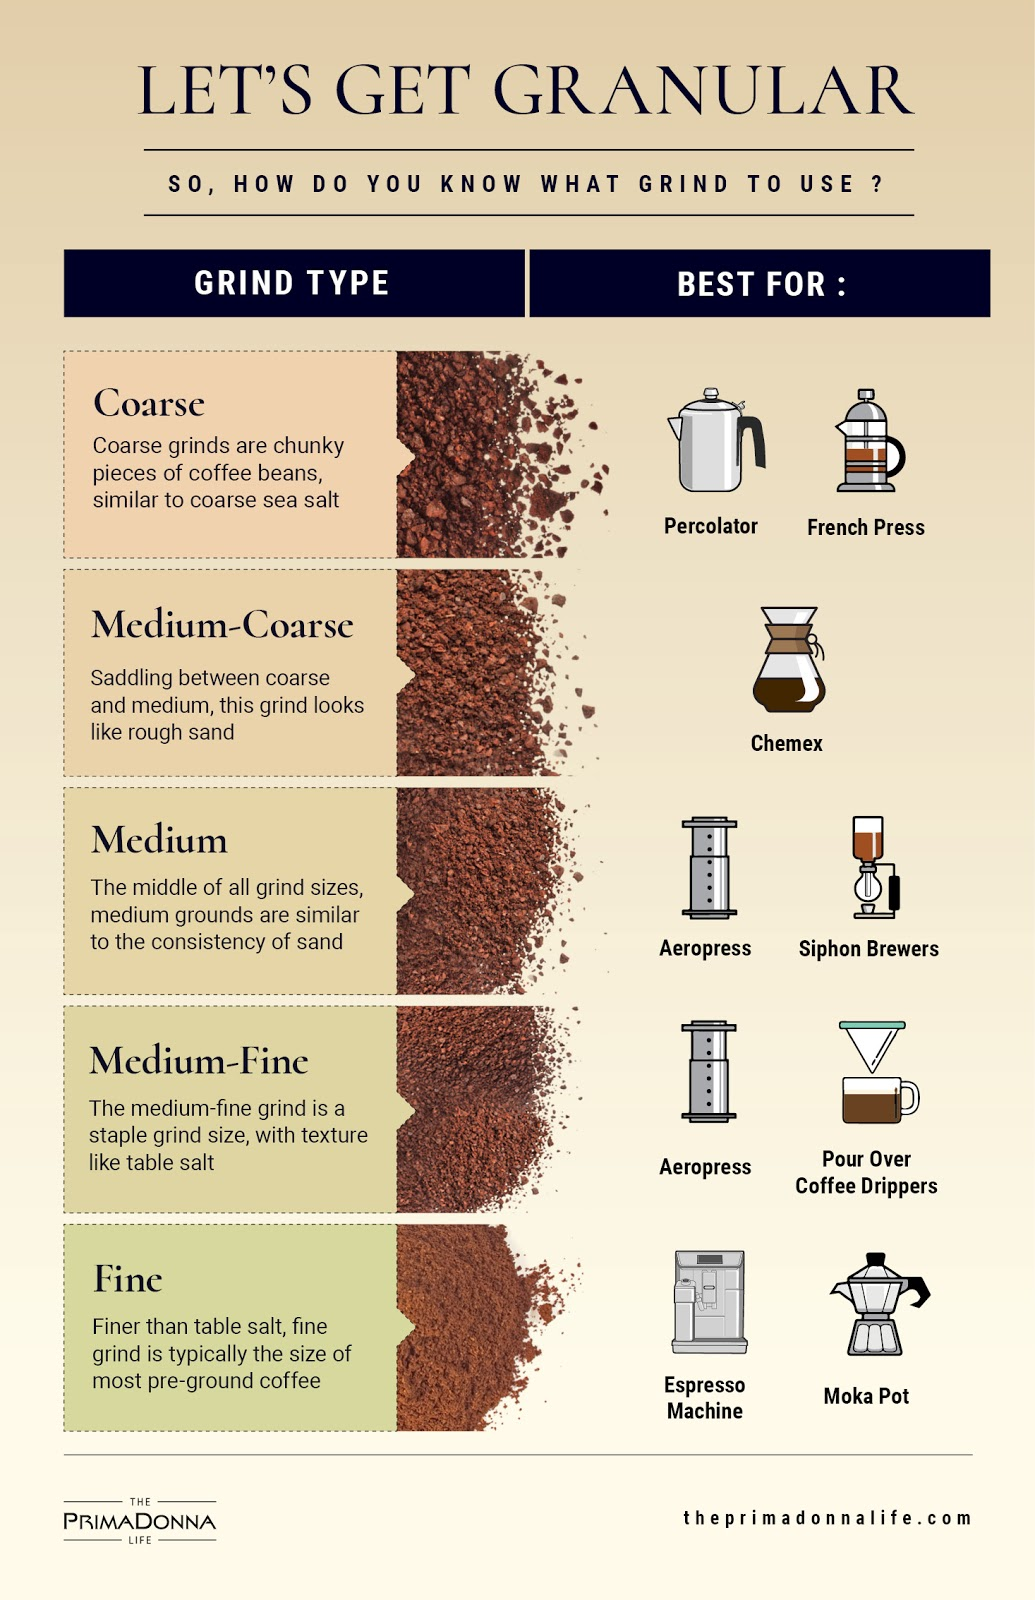 An infographic showing the recommended coffee grind size for various coffee equipment